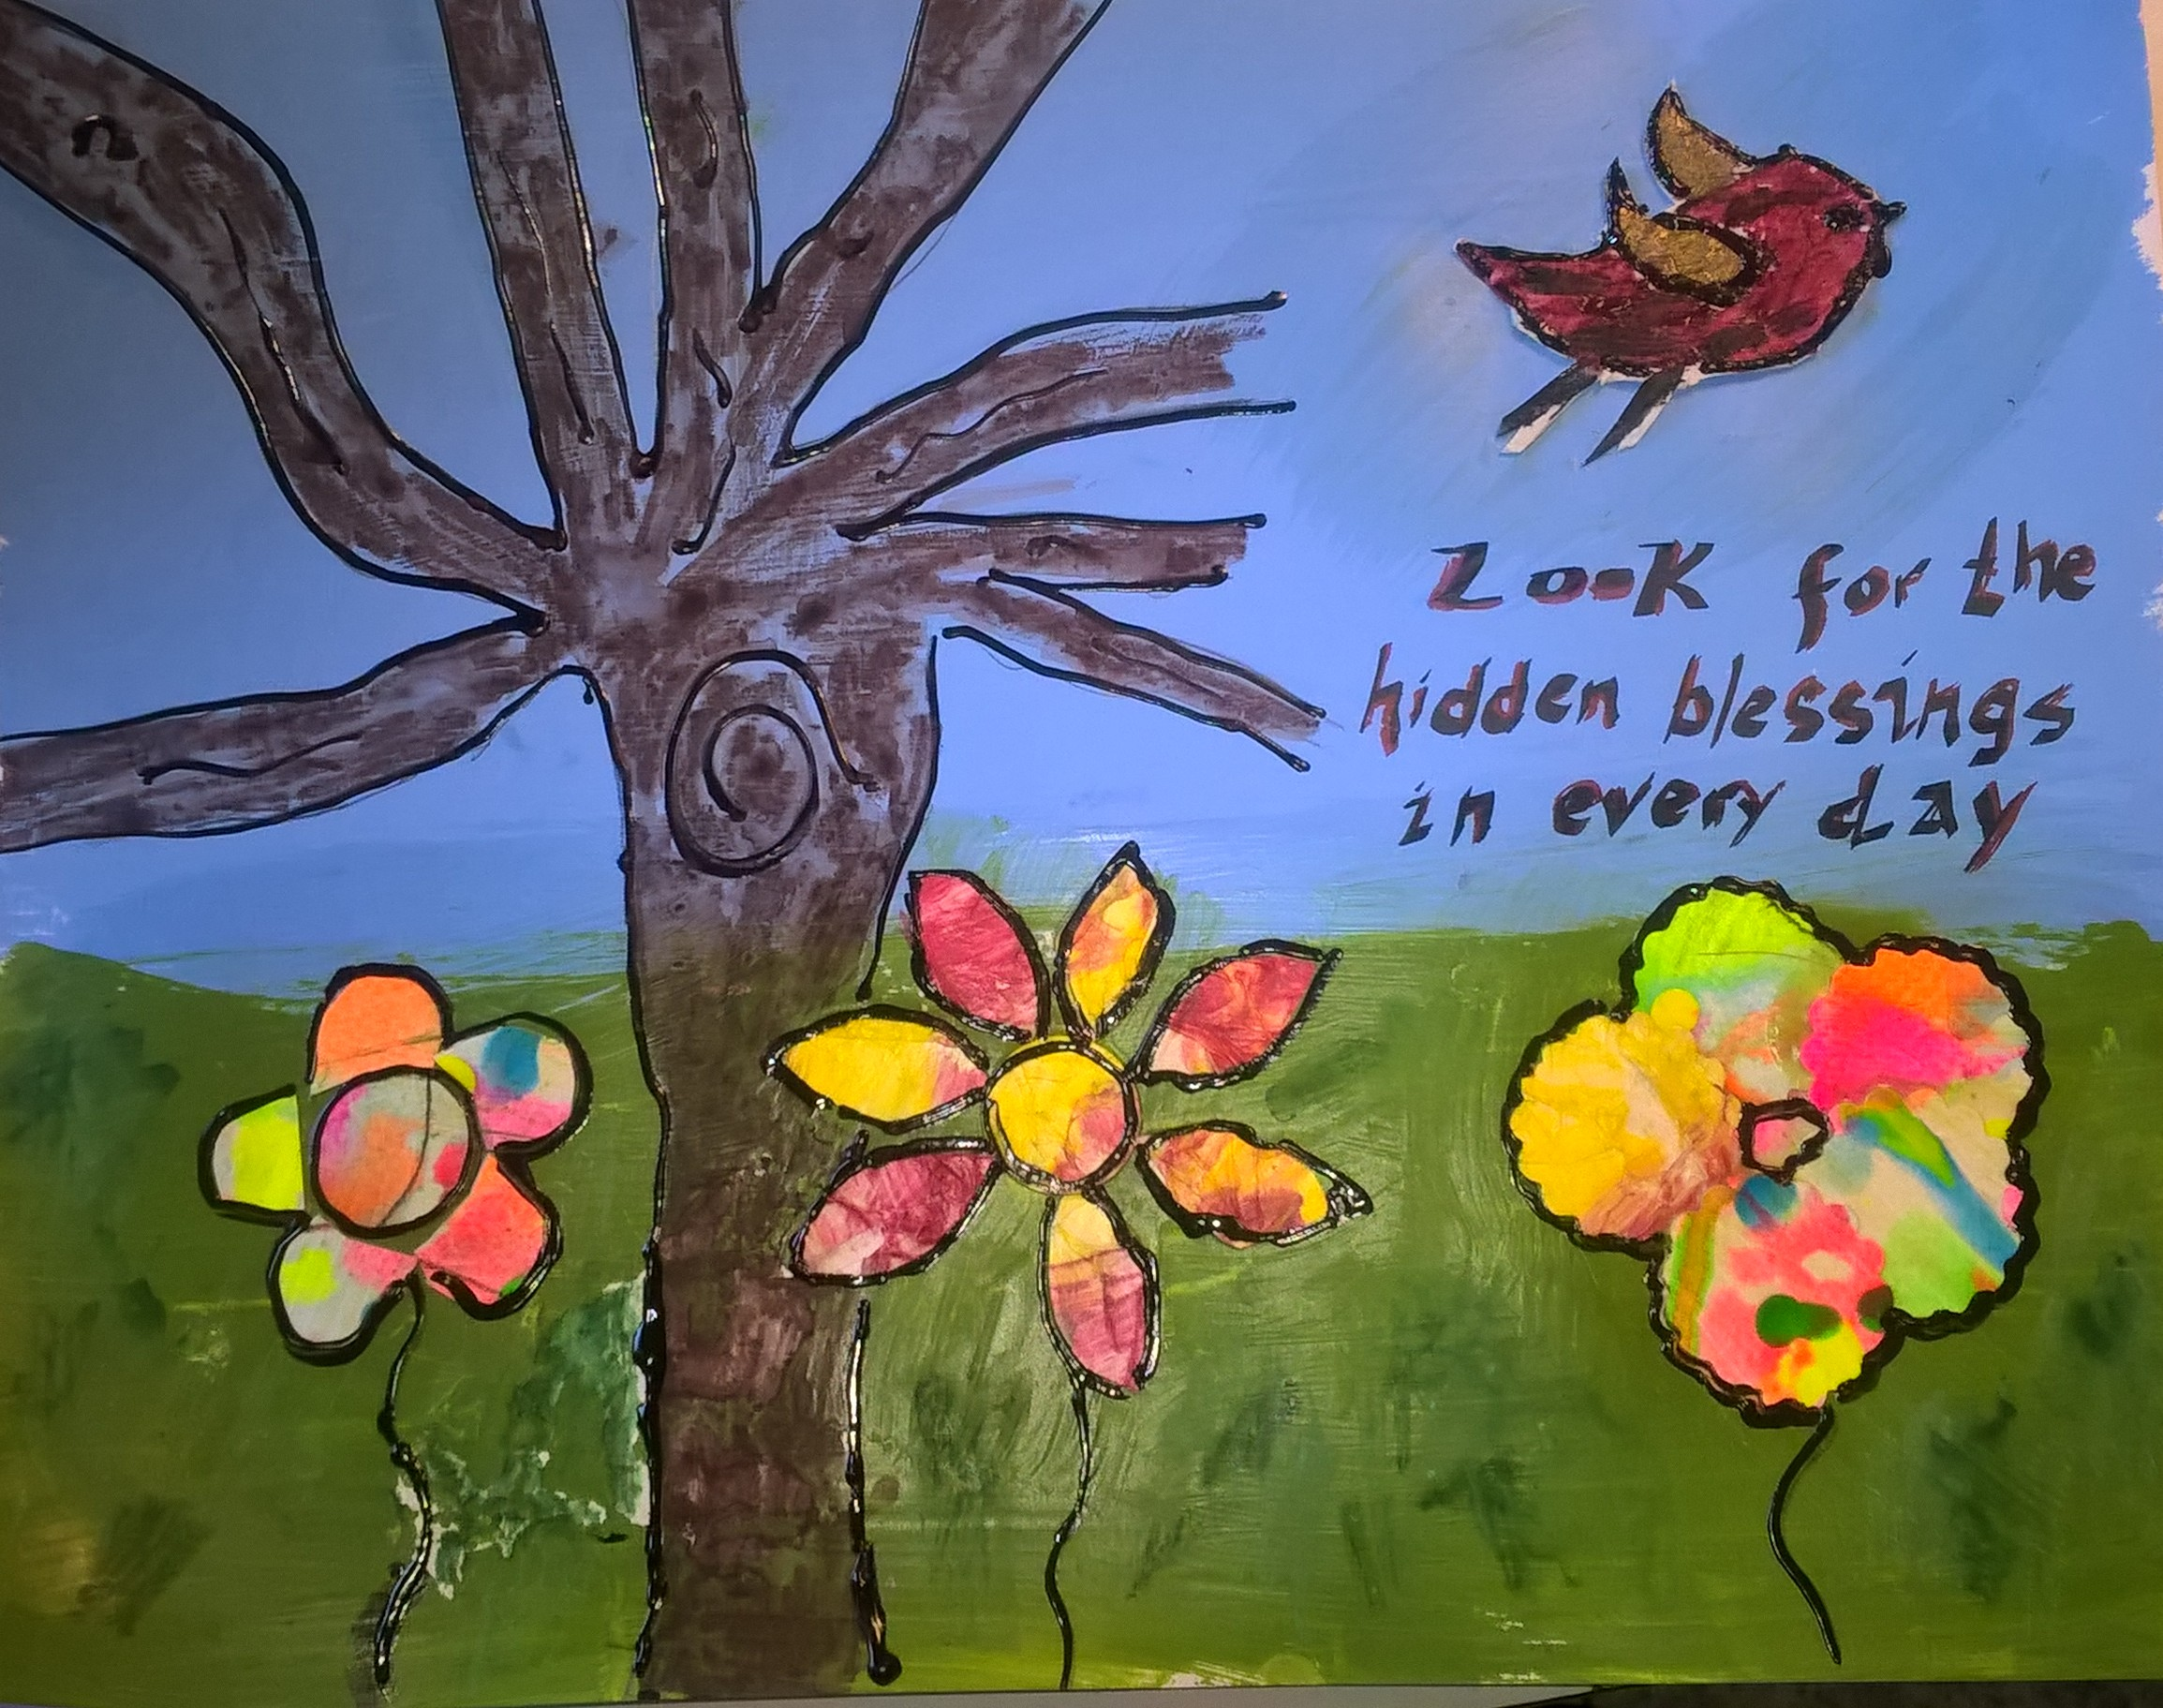 mixed media art with tree and flowers